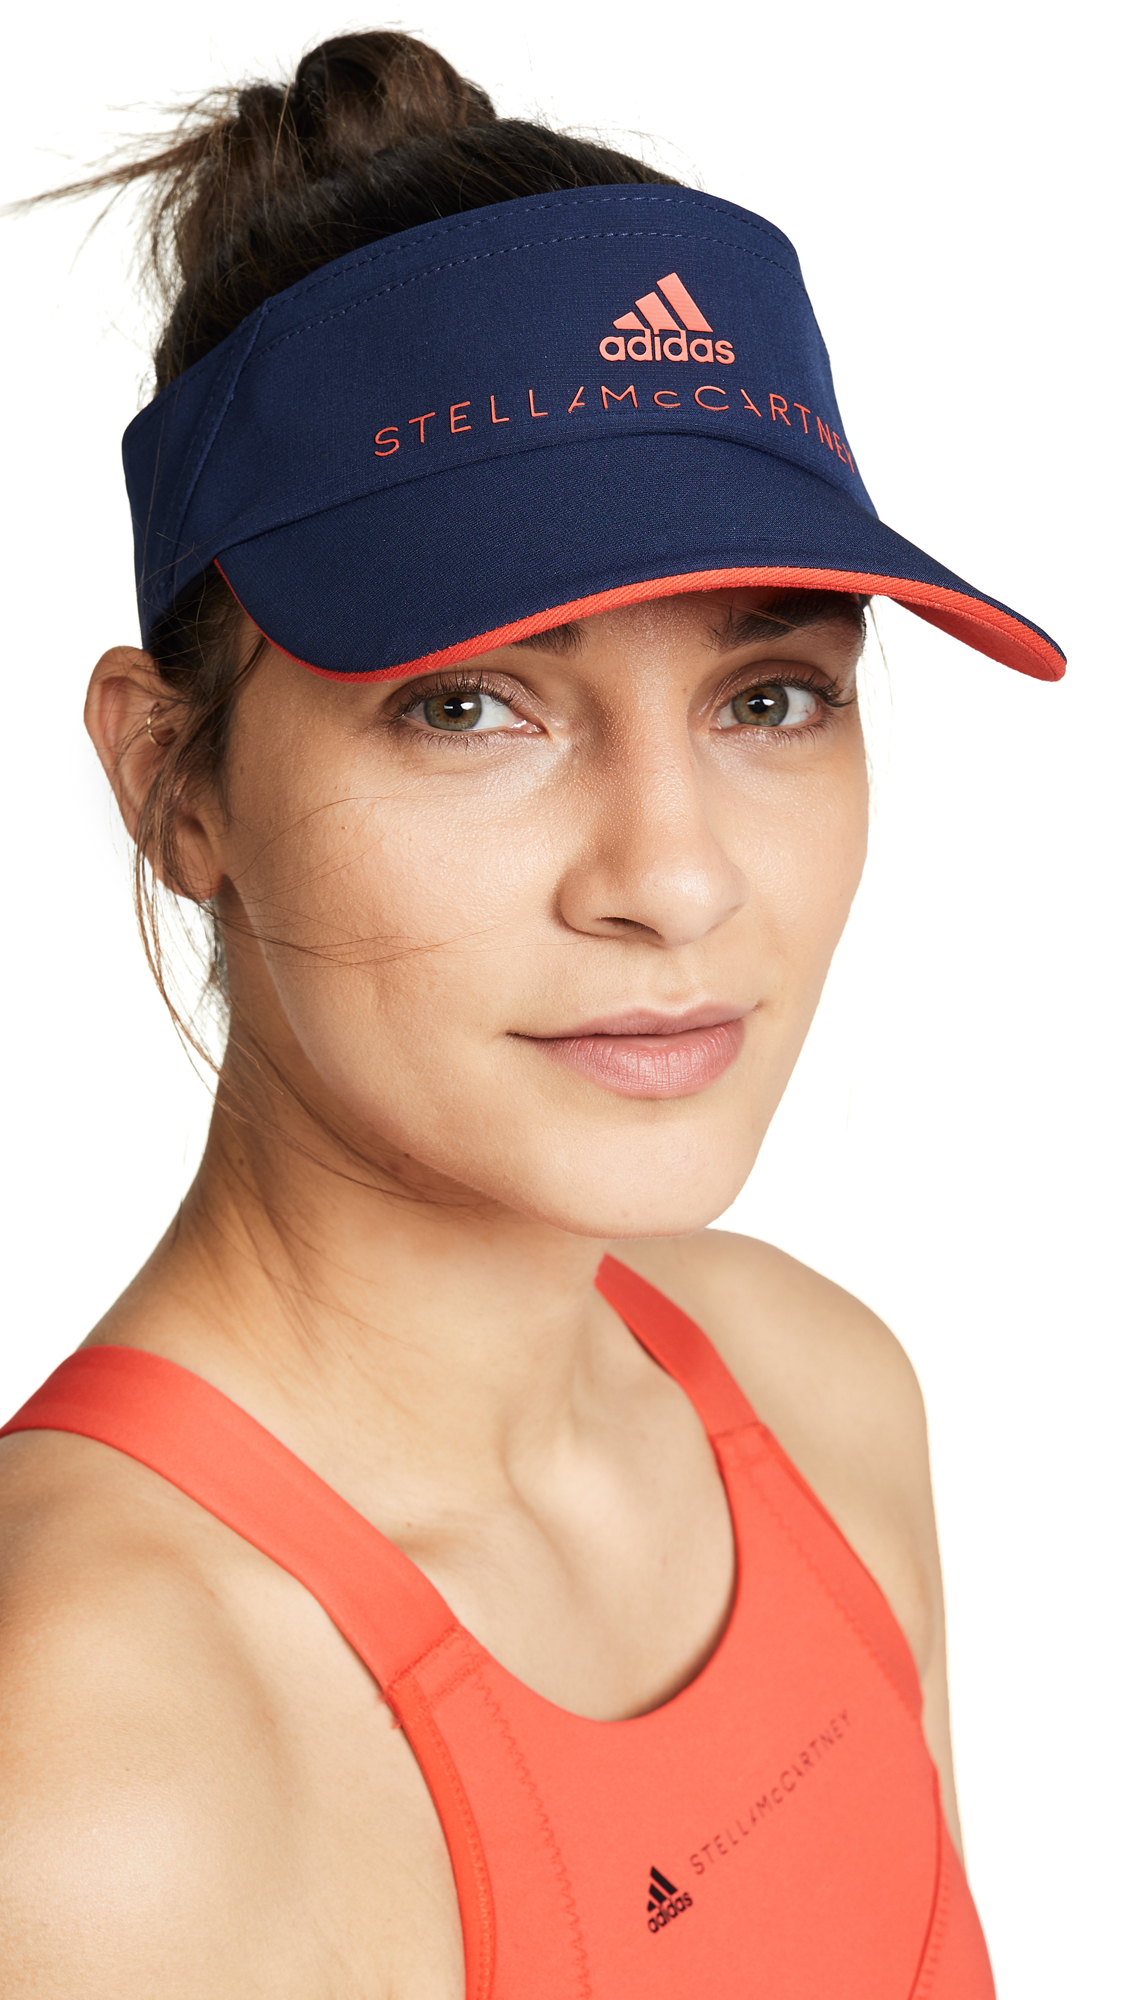 adidas by Stella McCartney Tennis Visor - Night Indigo/Core Red